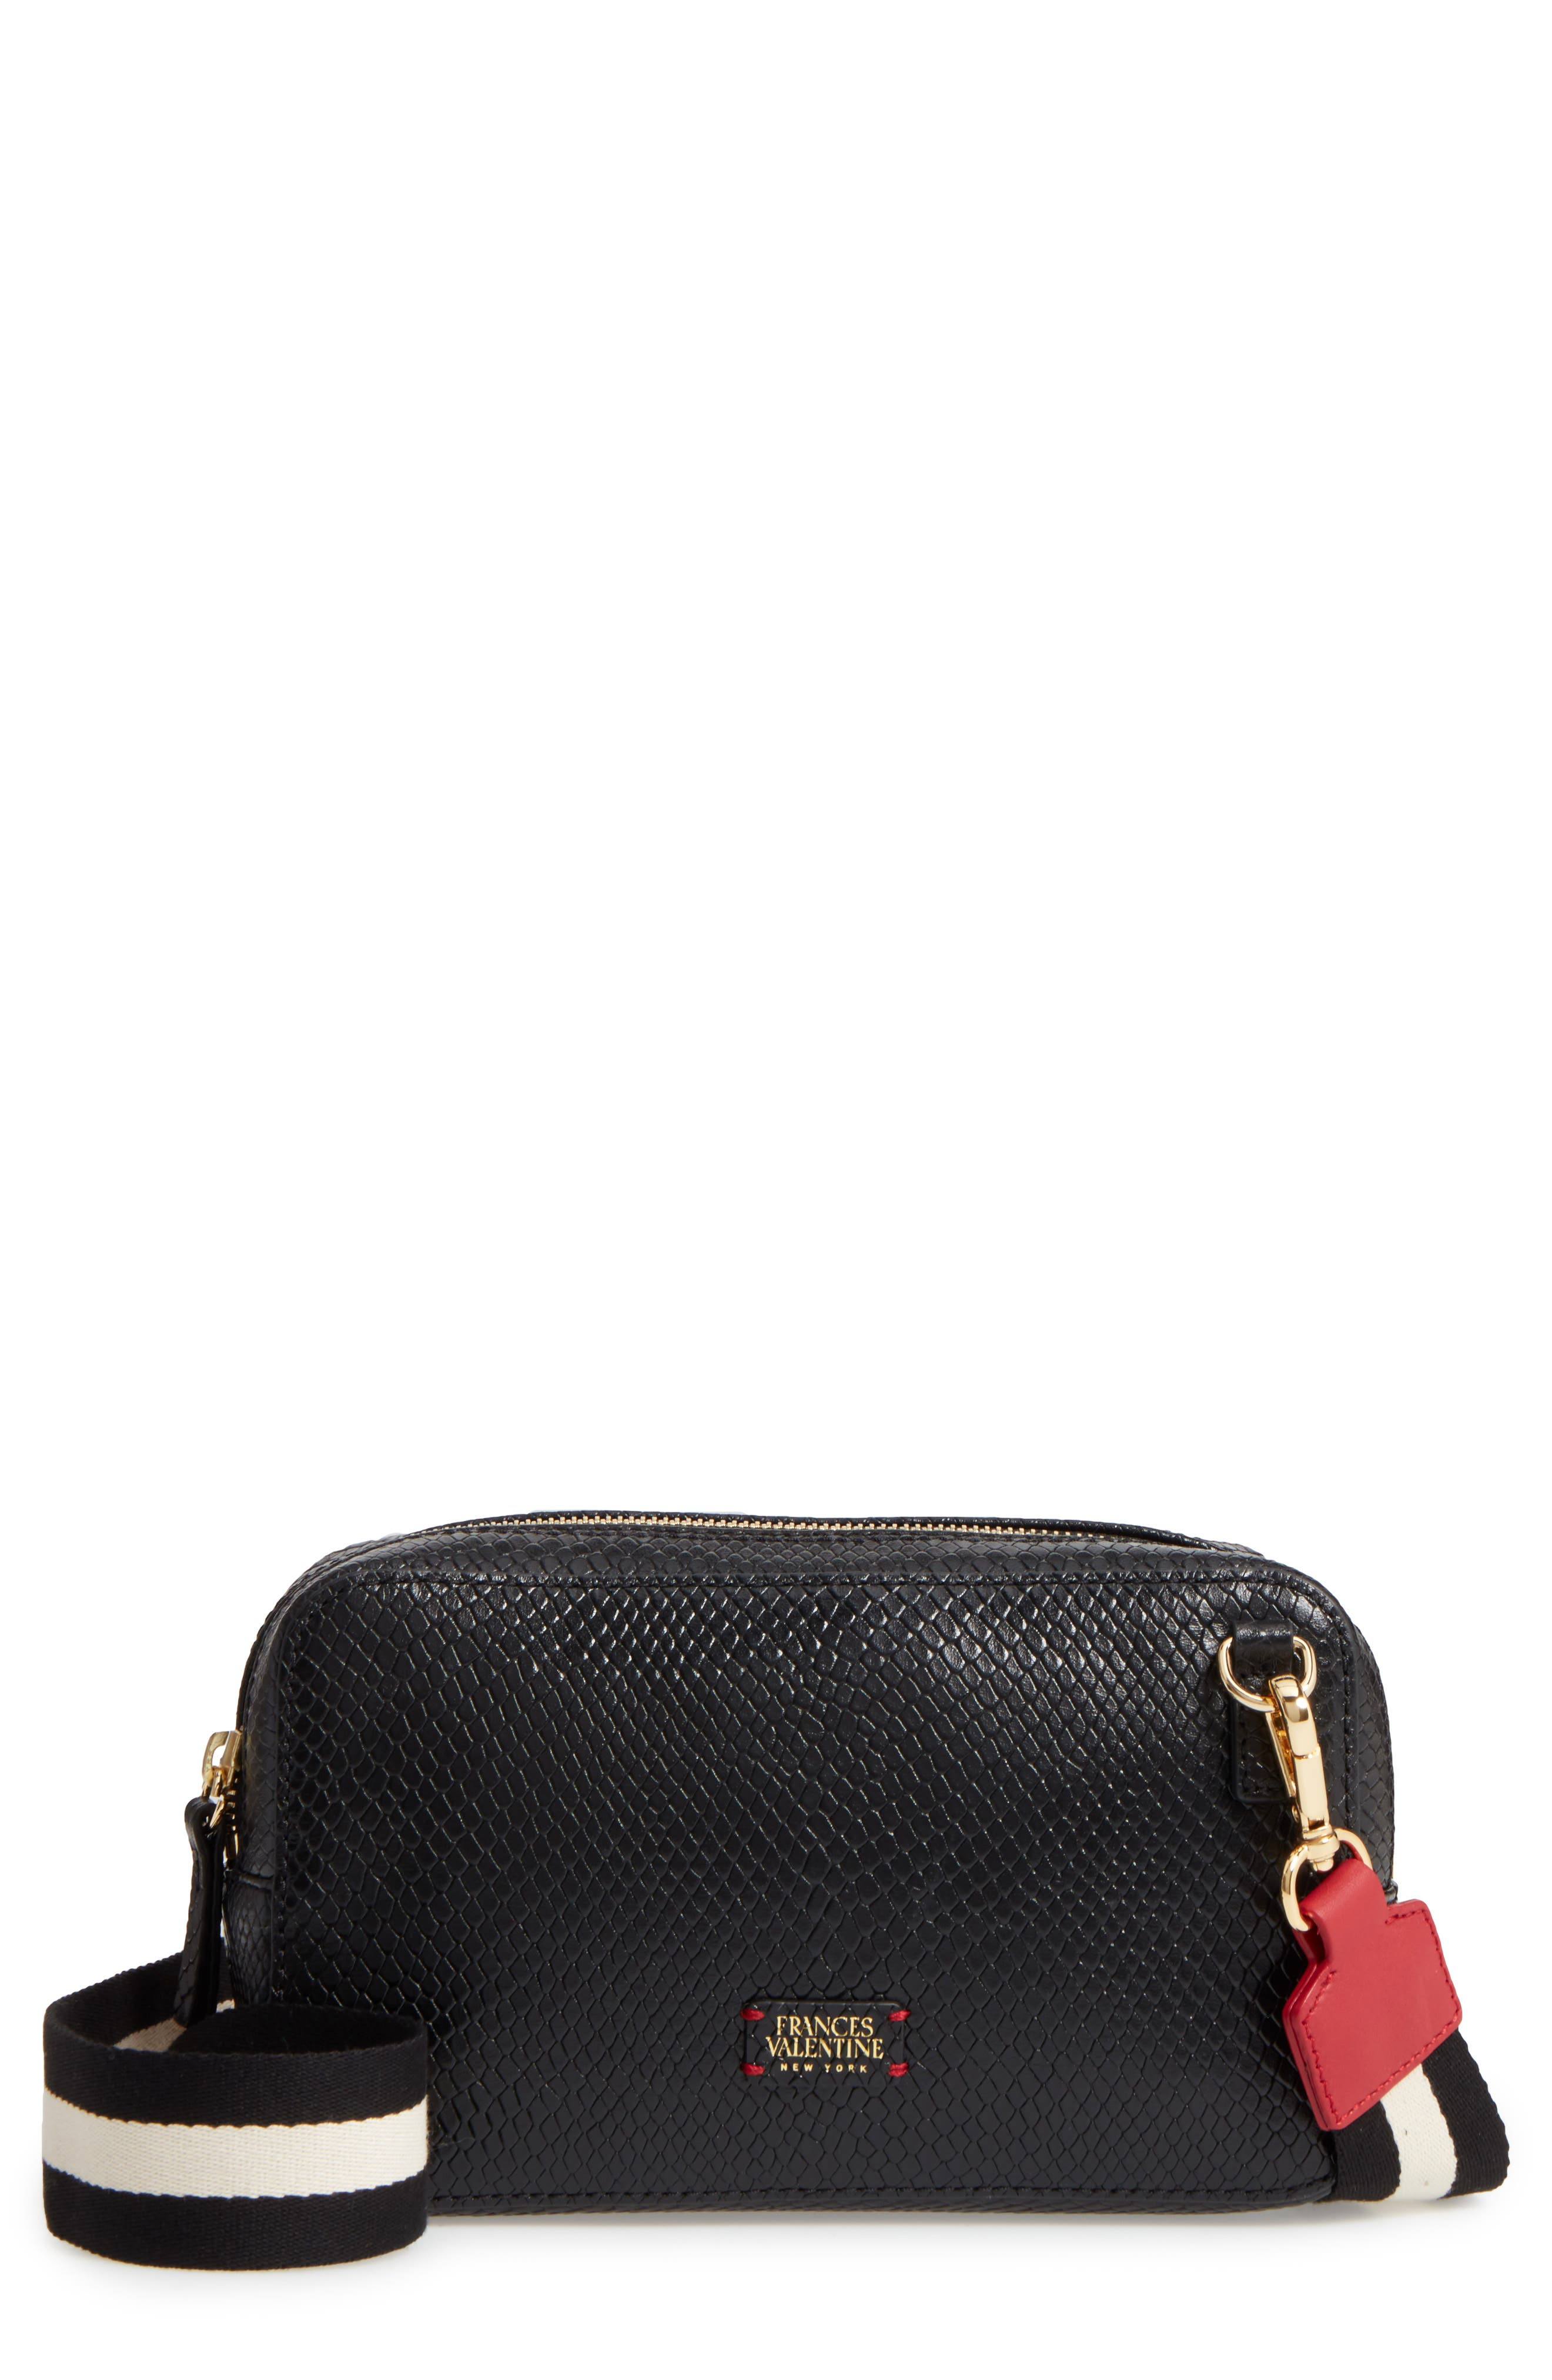 Frances Valentine Snakeskin Embossed Leather Crossbody Bag